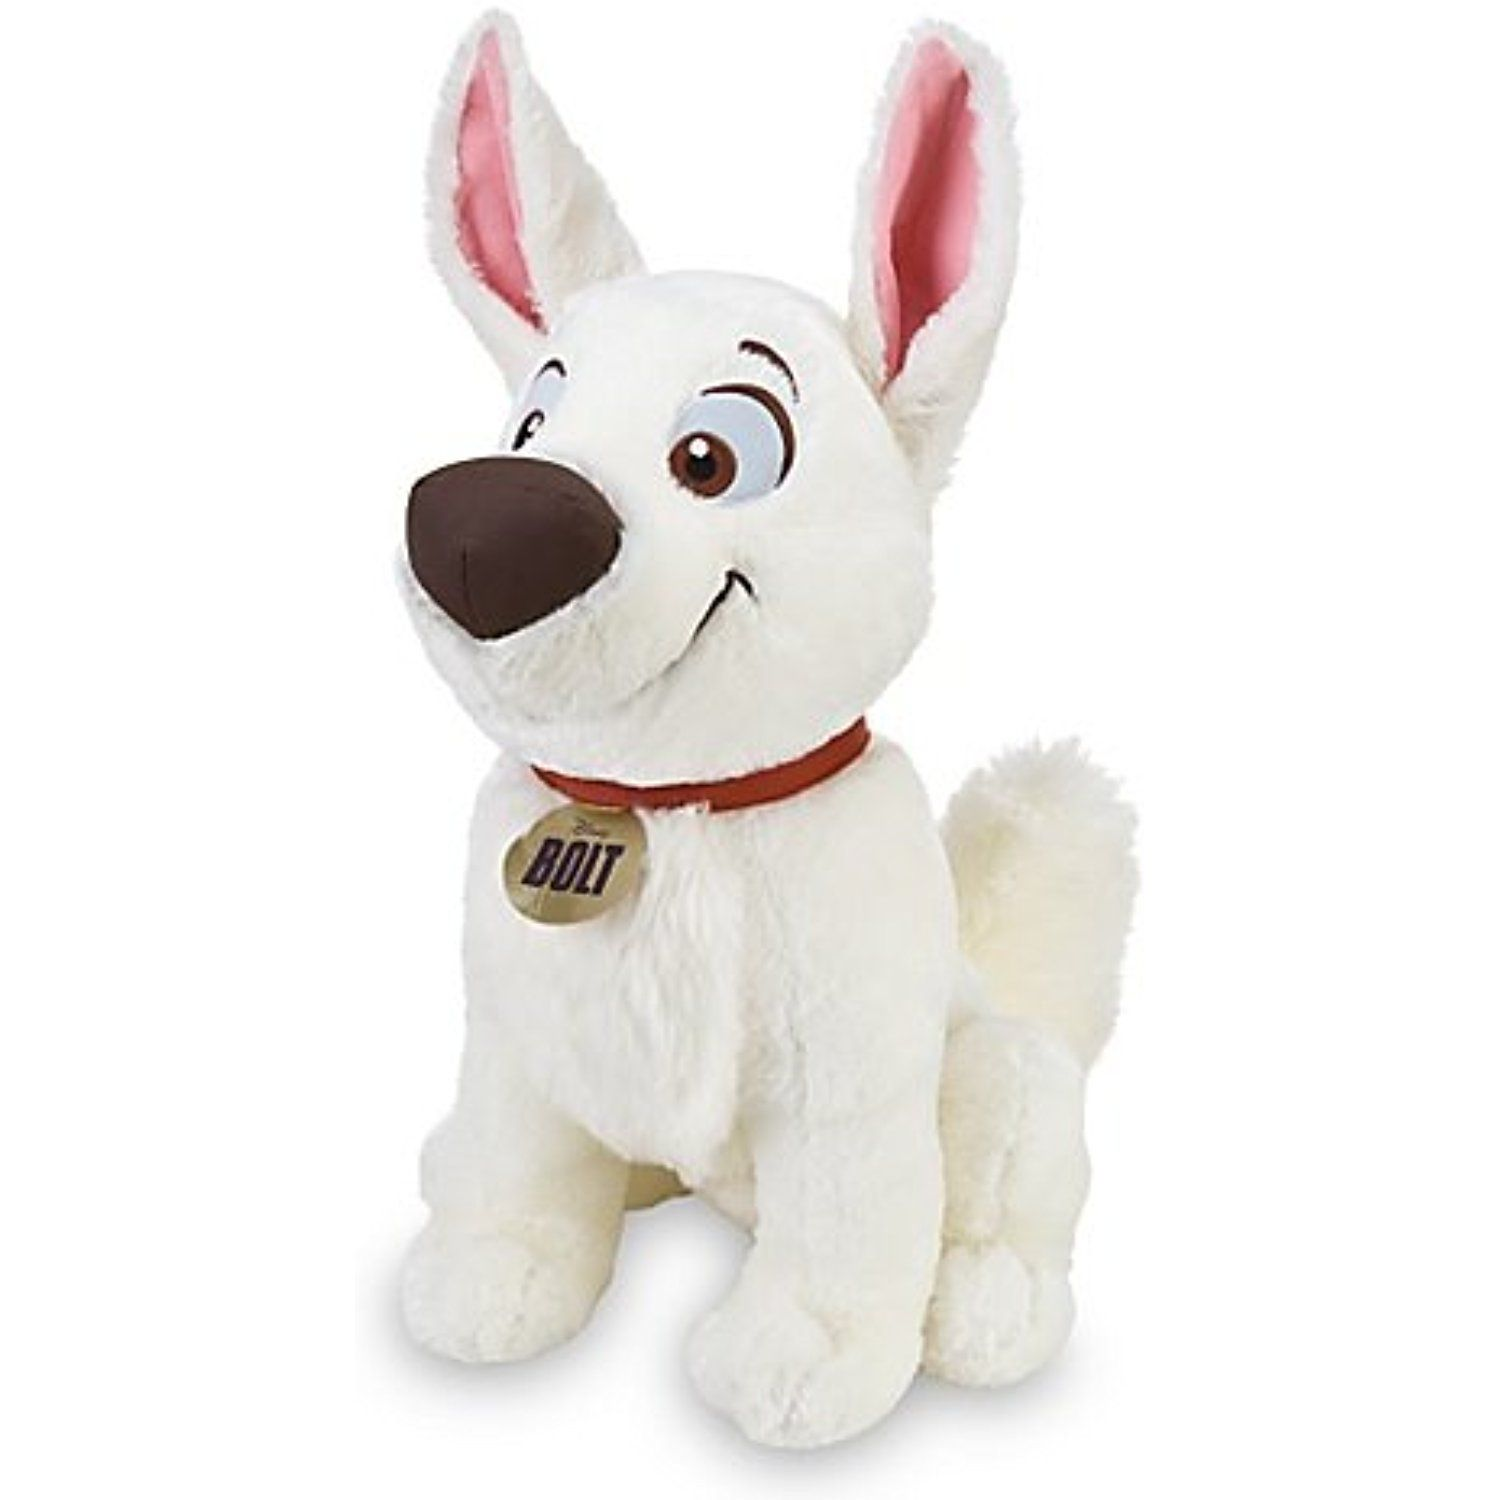 Disney Large Bolt Plush Toy 23 To View Further For This Item Visit The Image Link This Is An Affiliate Link Plush Toy Plush African Jungle Animals [ 1500 x 1500 Pixel ]